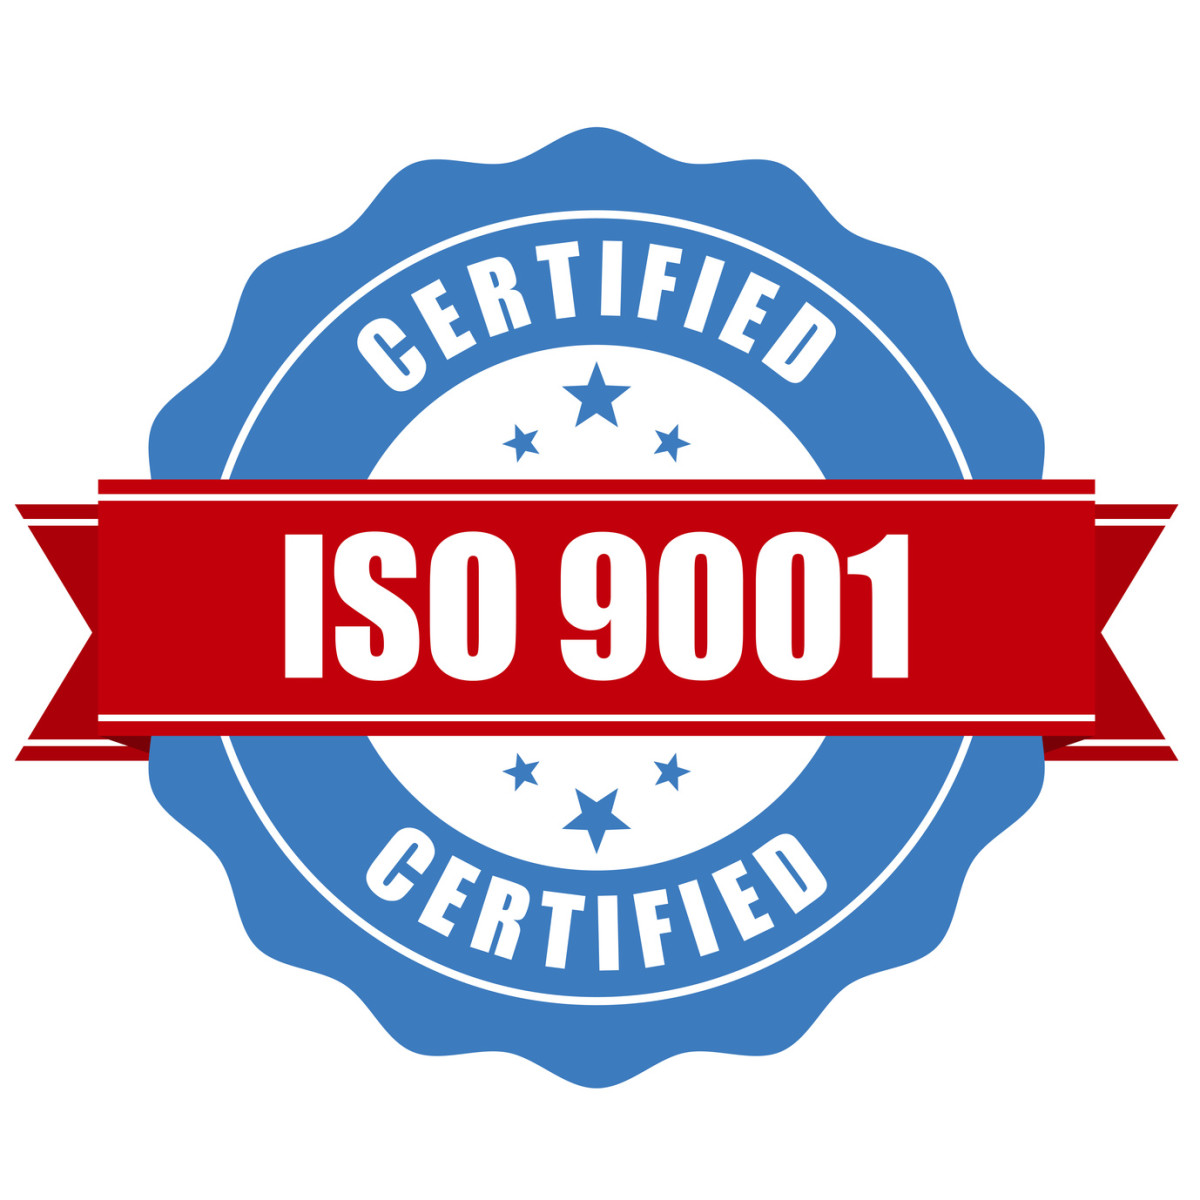 ISO 9001 requirement a QMS and that an organizations needs demonstrate the ability to consistently provide products and services that meet customer and applicable statutory and regulatory requirements.